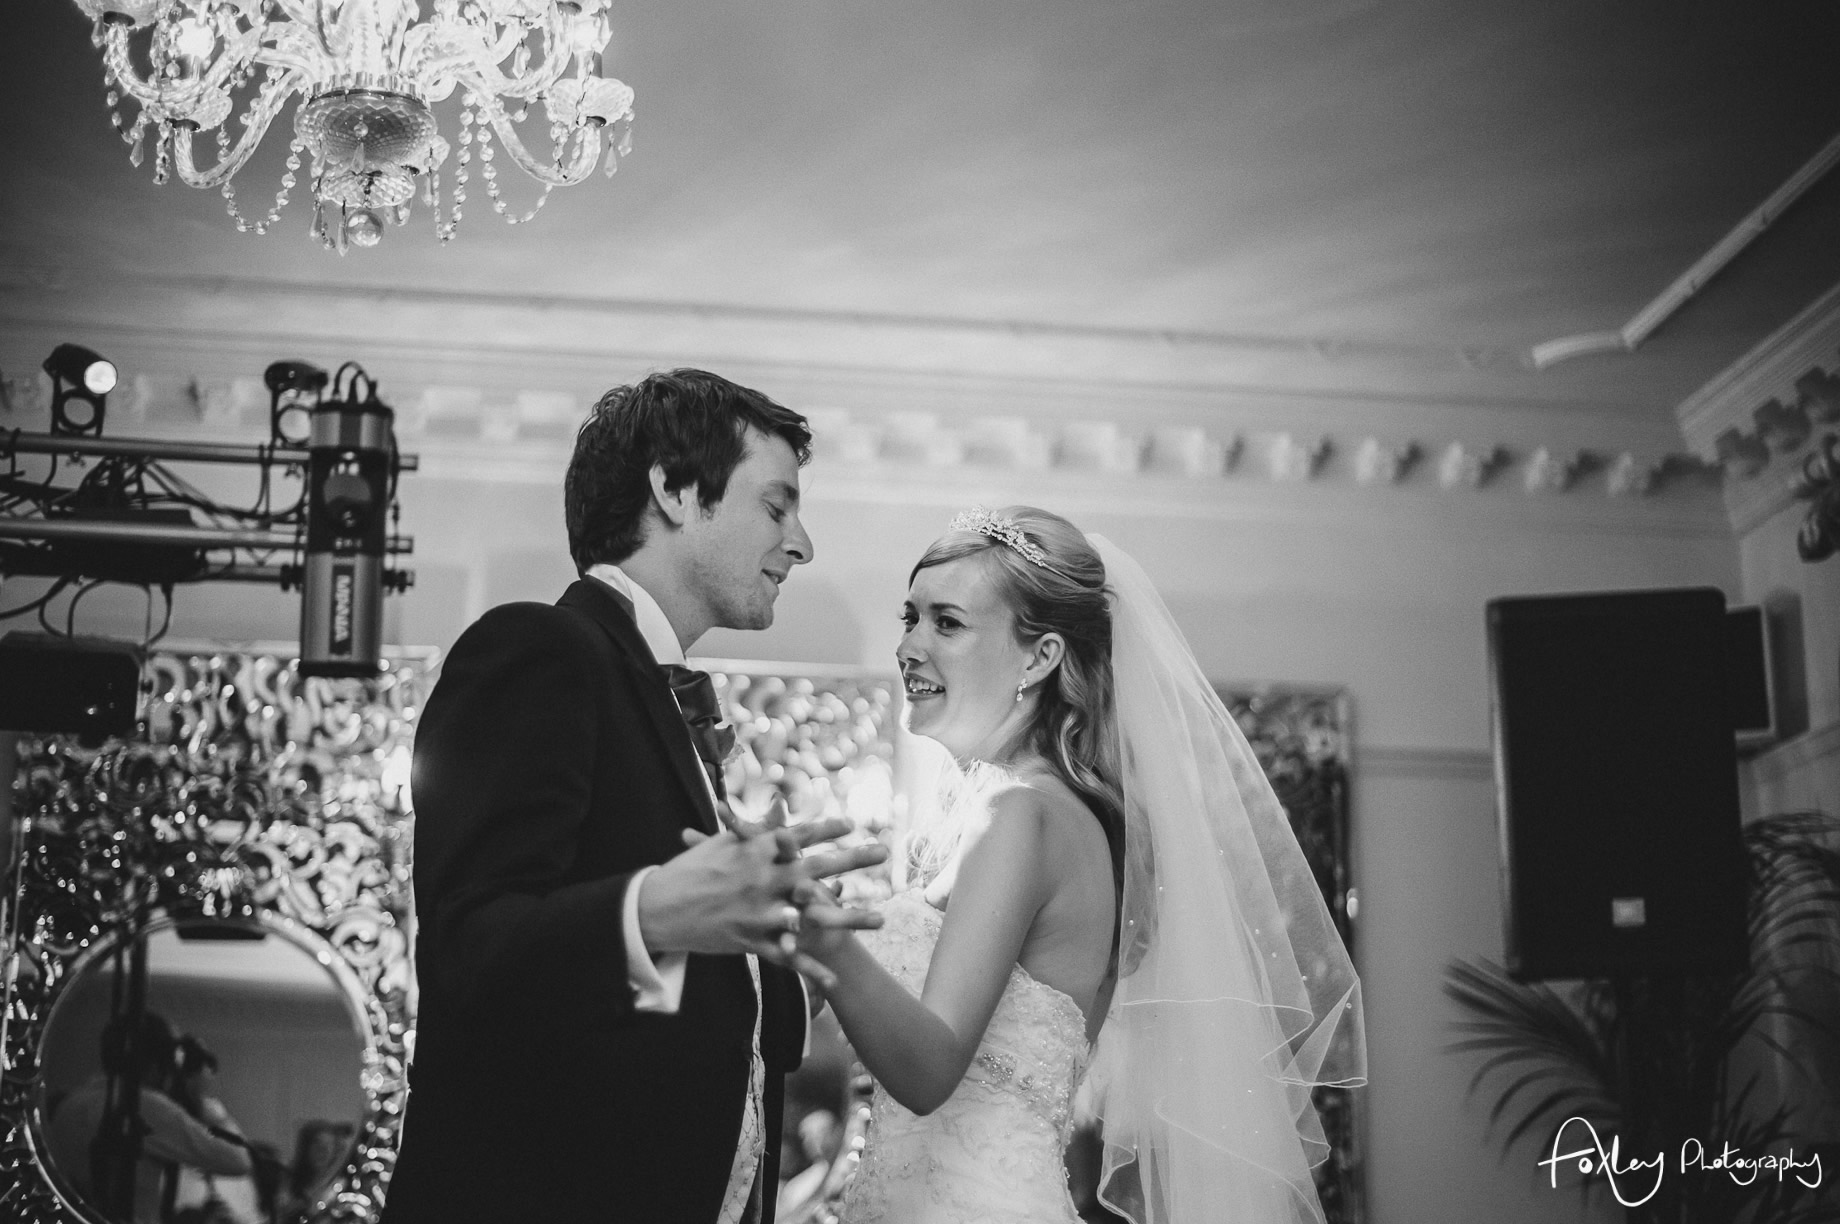 Gemma-And-Andys-Wedding-Eaves-Hall-176